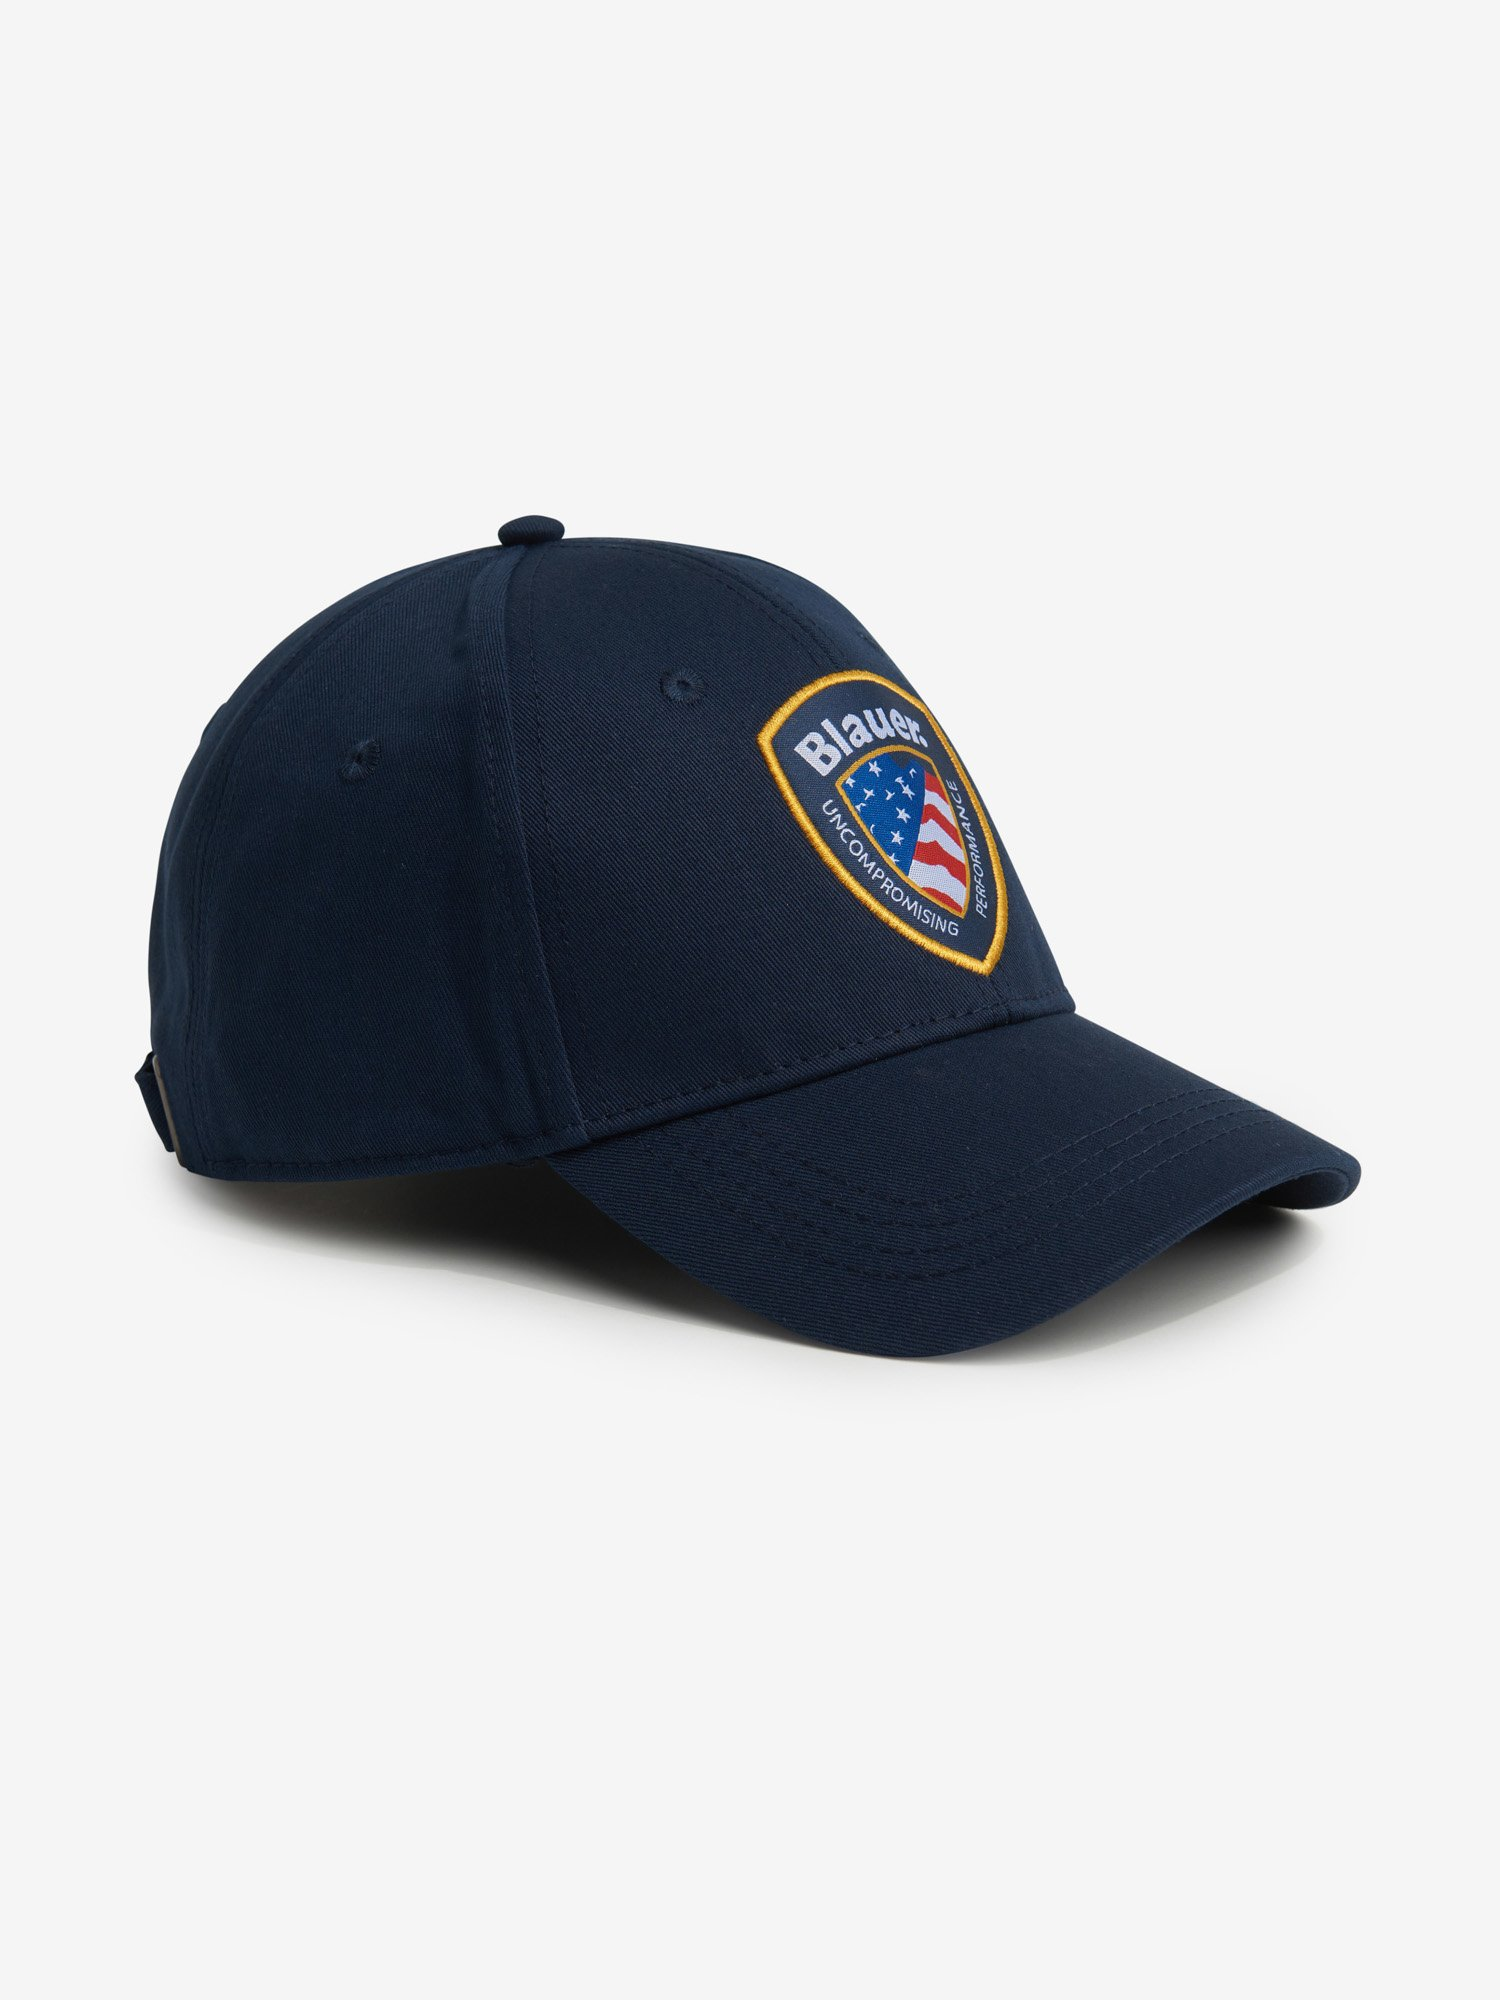 BOSTON BASEBALL CAP - Blauer